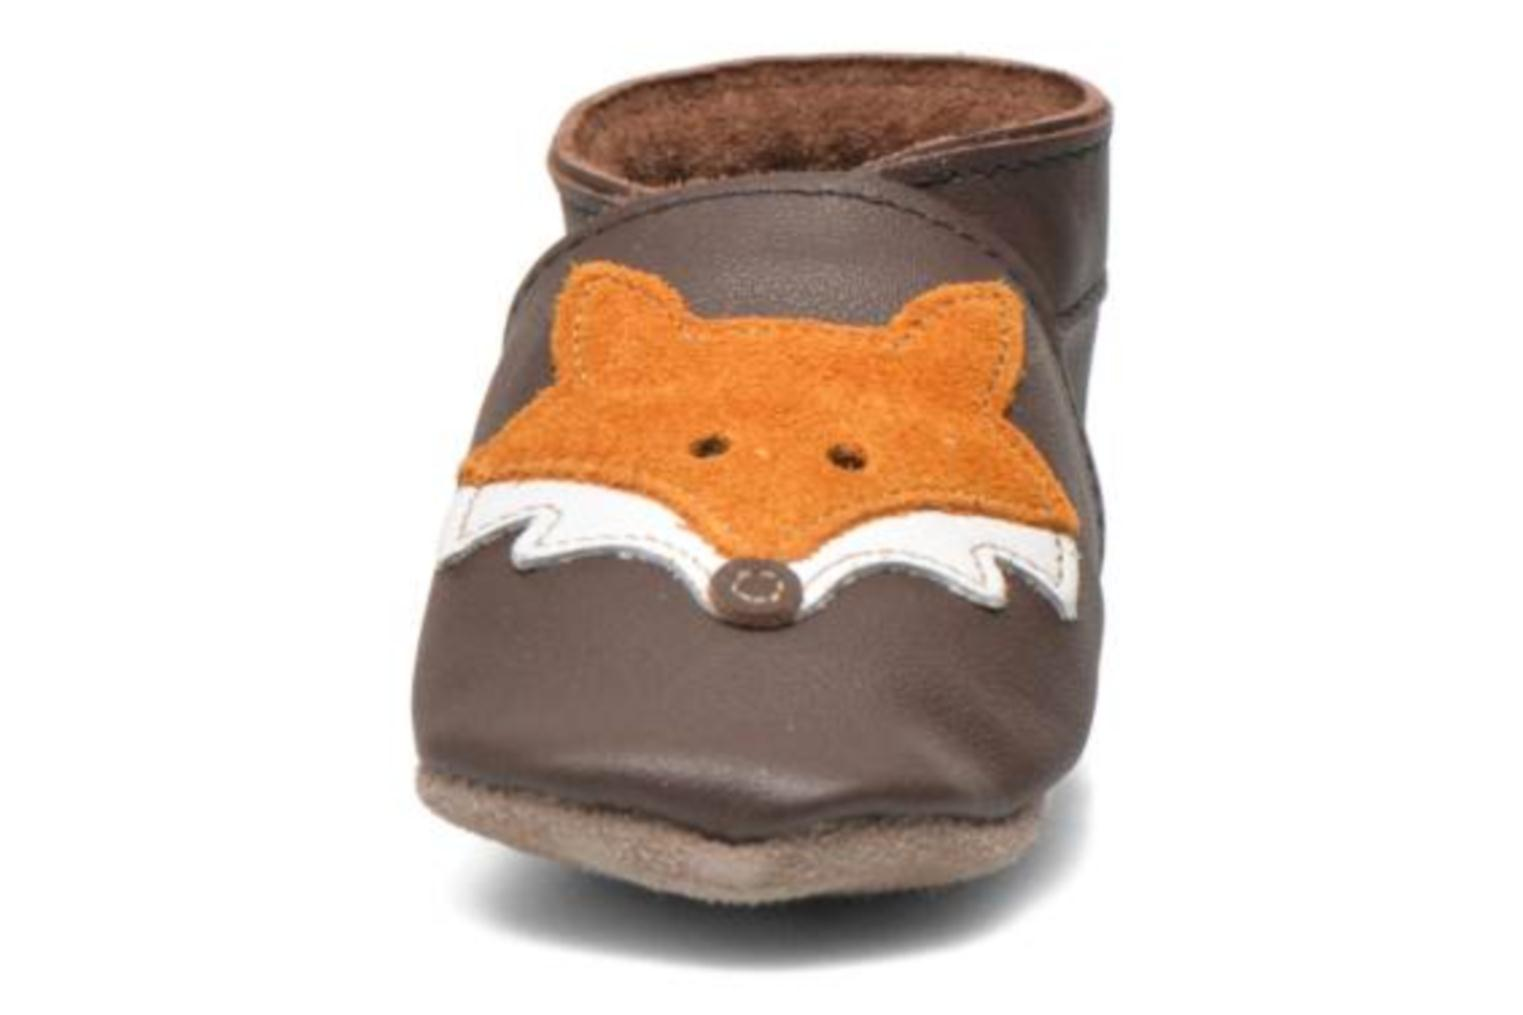 Pantoffels Inch Blue Mr Fox Bruin model